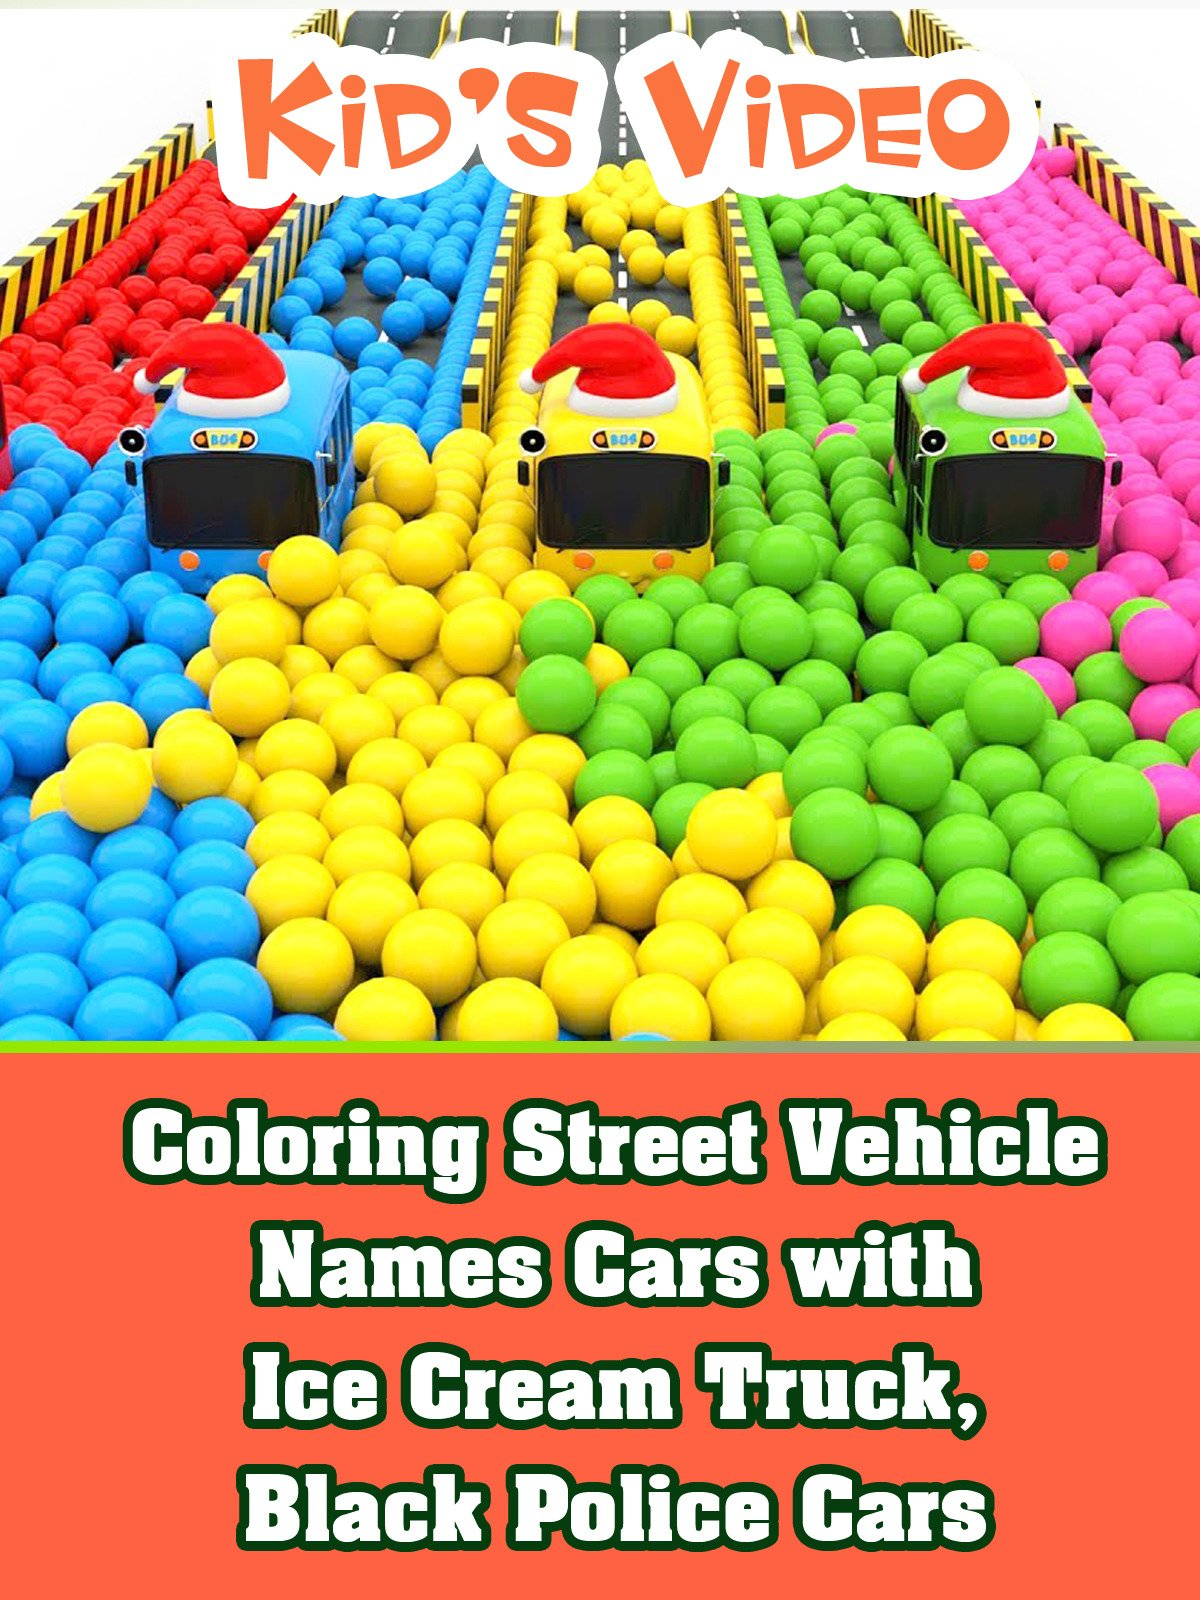 Coloring Street Vehicle Names Cars with Ice Cream Truck, Black Police Cars